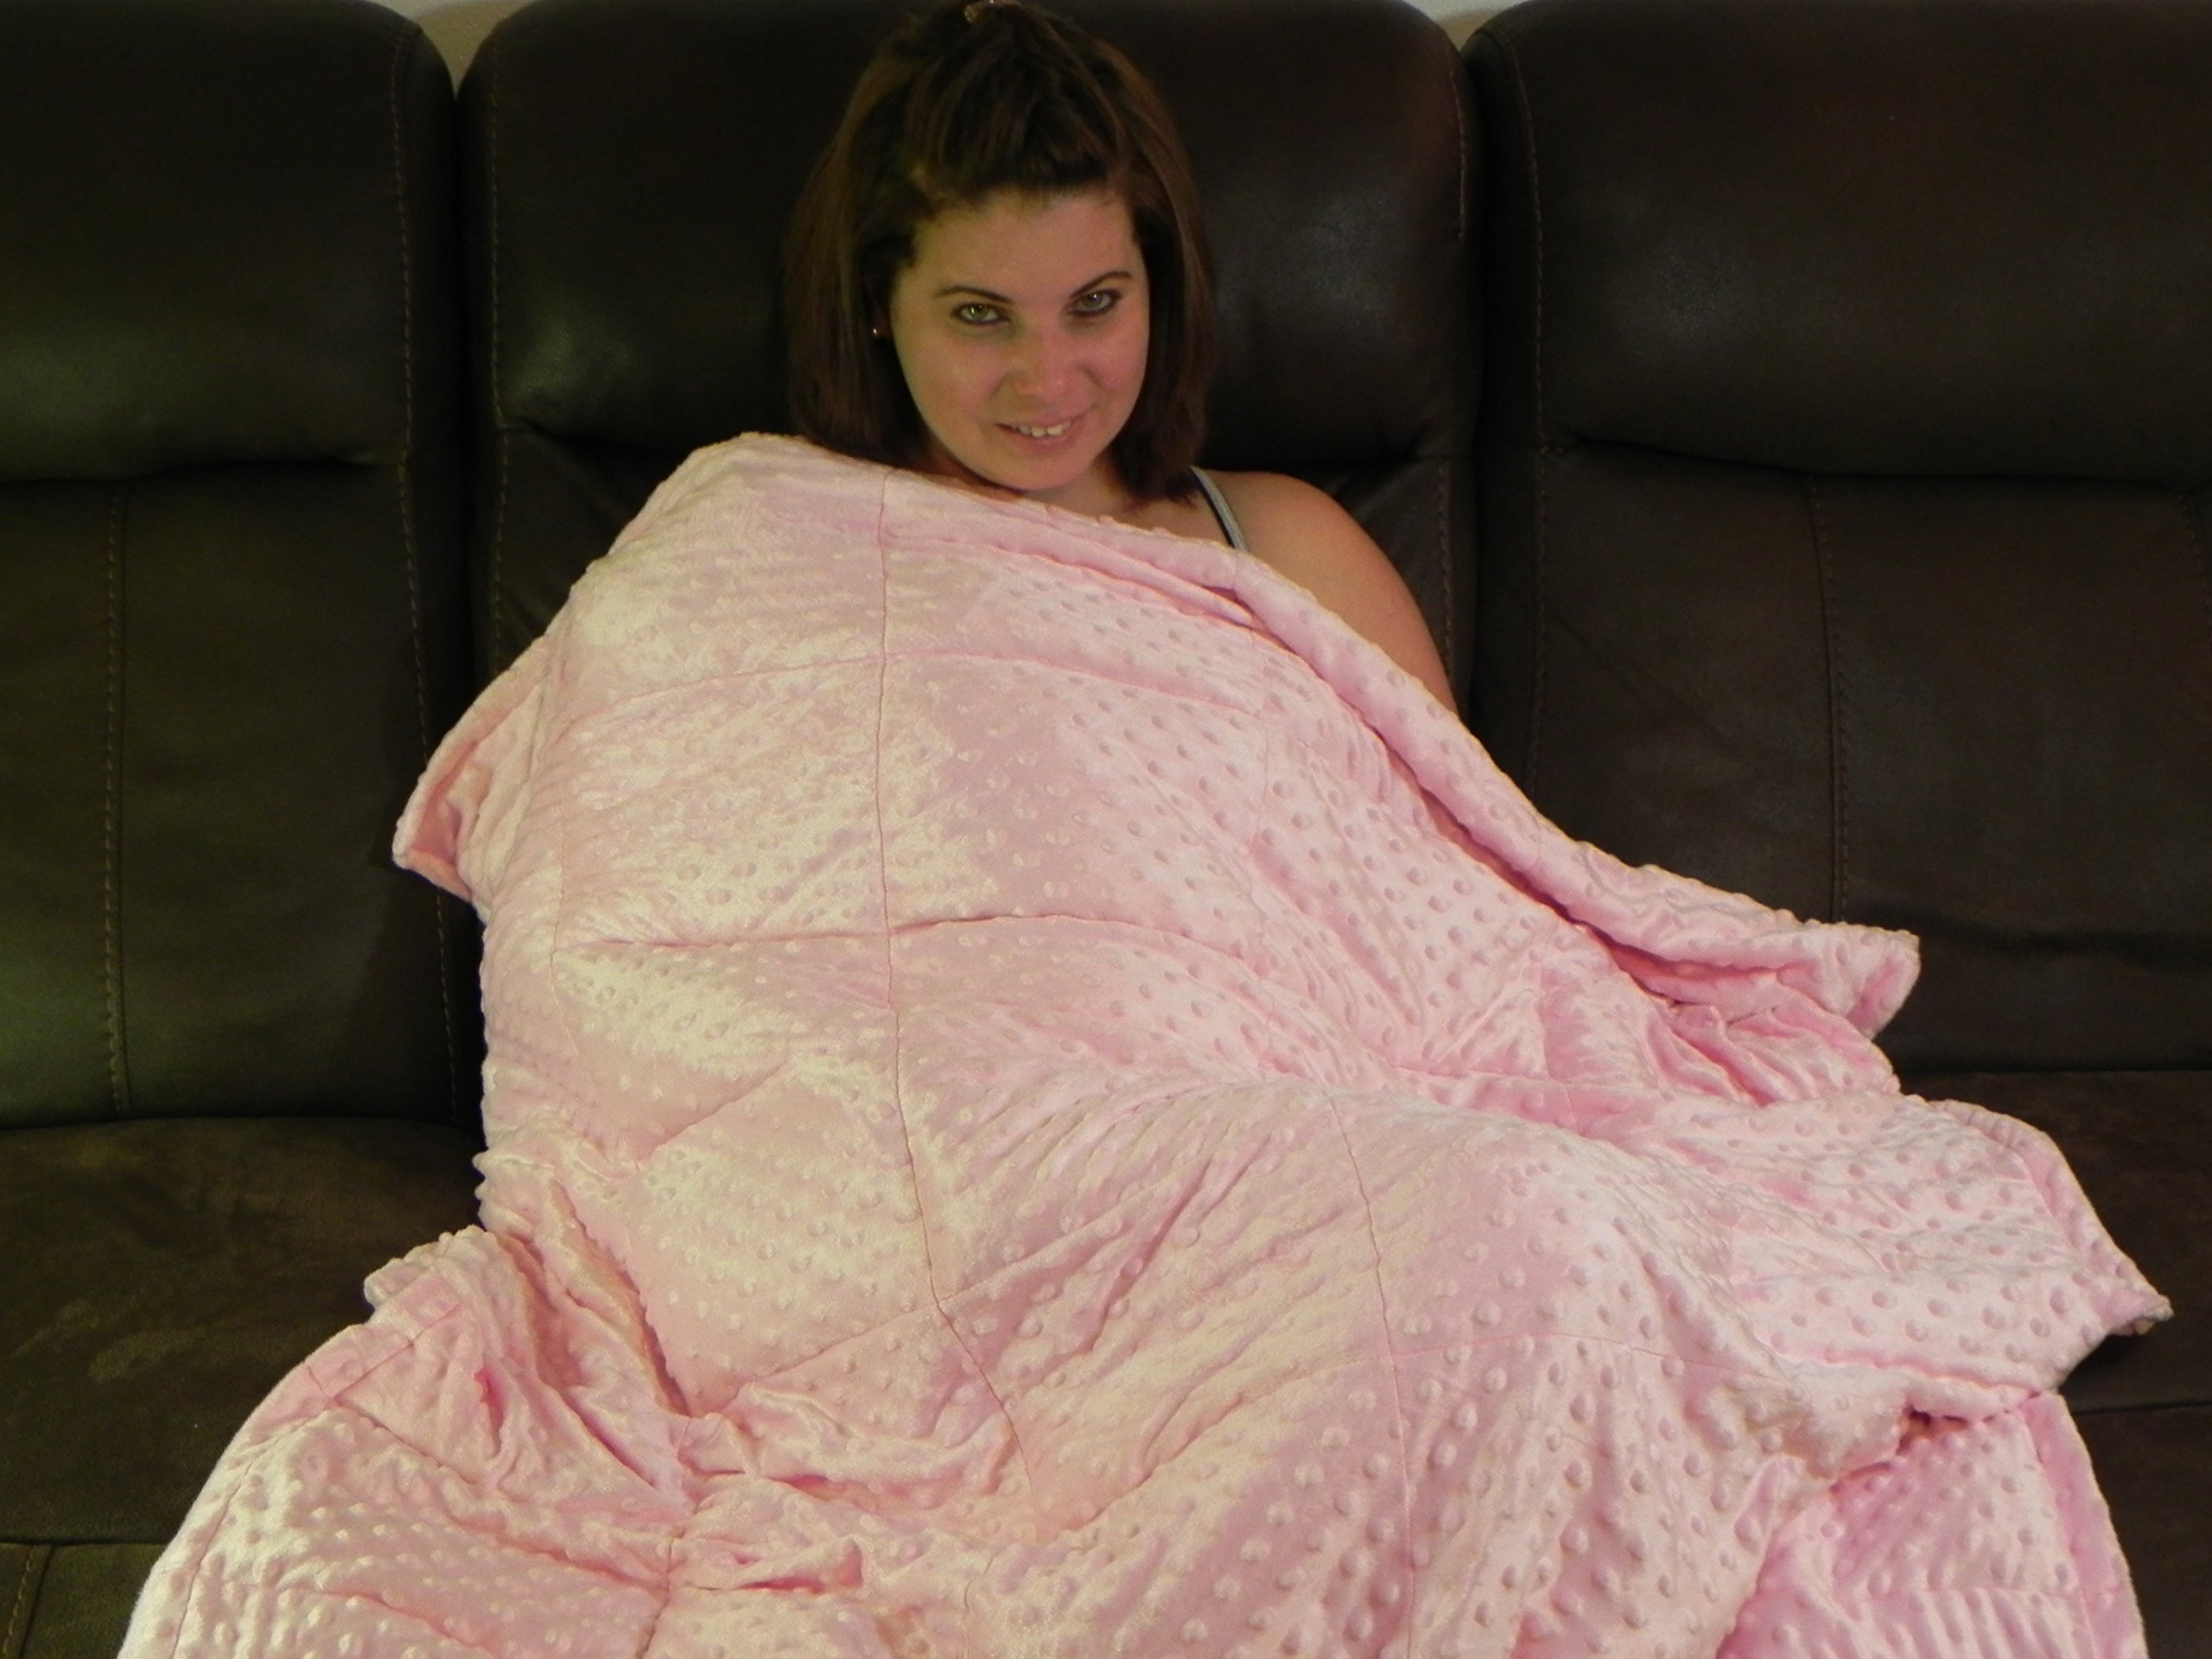 Weighted Blanket for Autism & Anxiety - Great for Sensory Processing Disorder 60 x 40 inch (pink, 14 lbs)